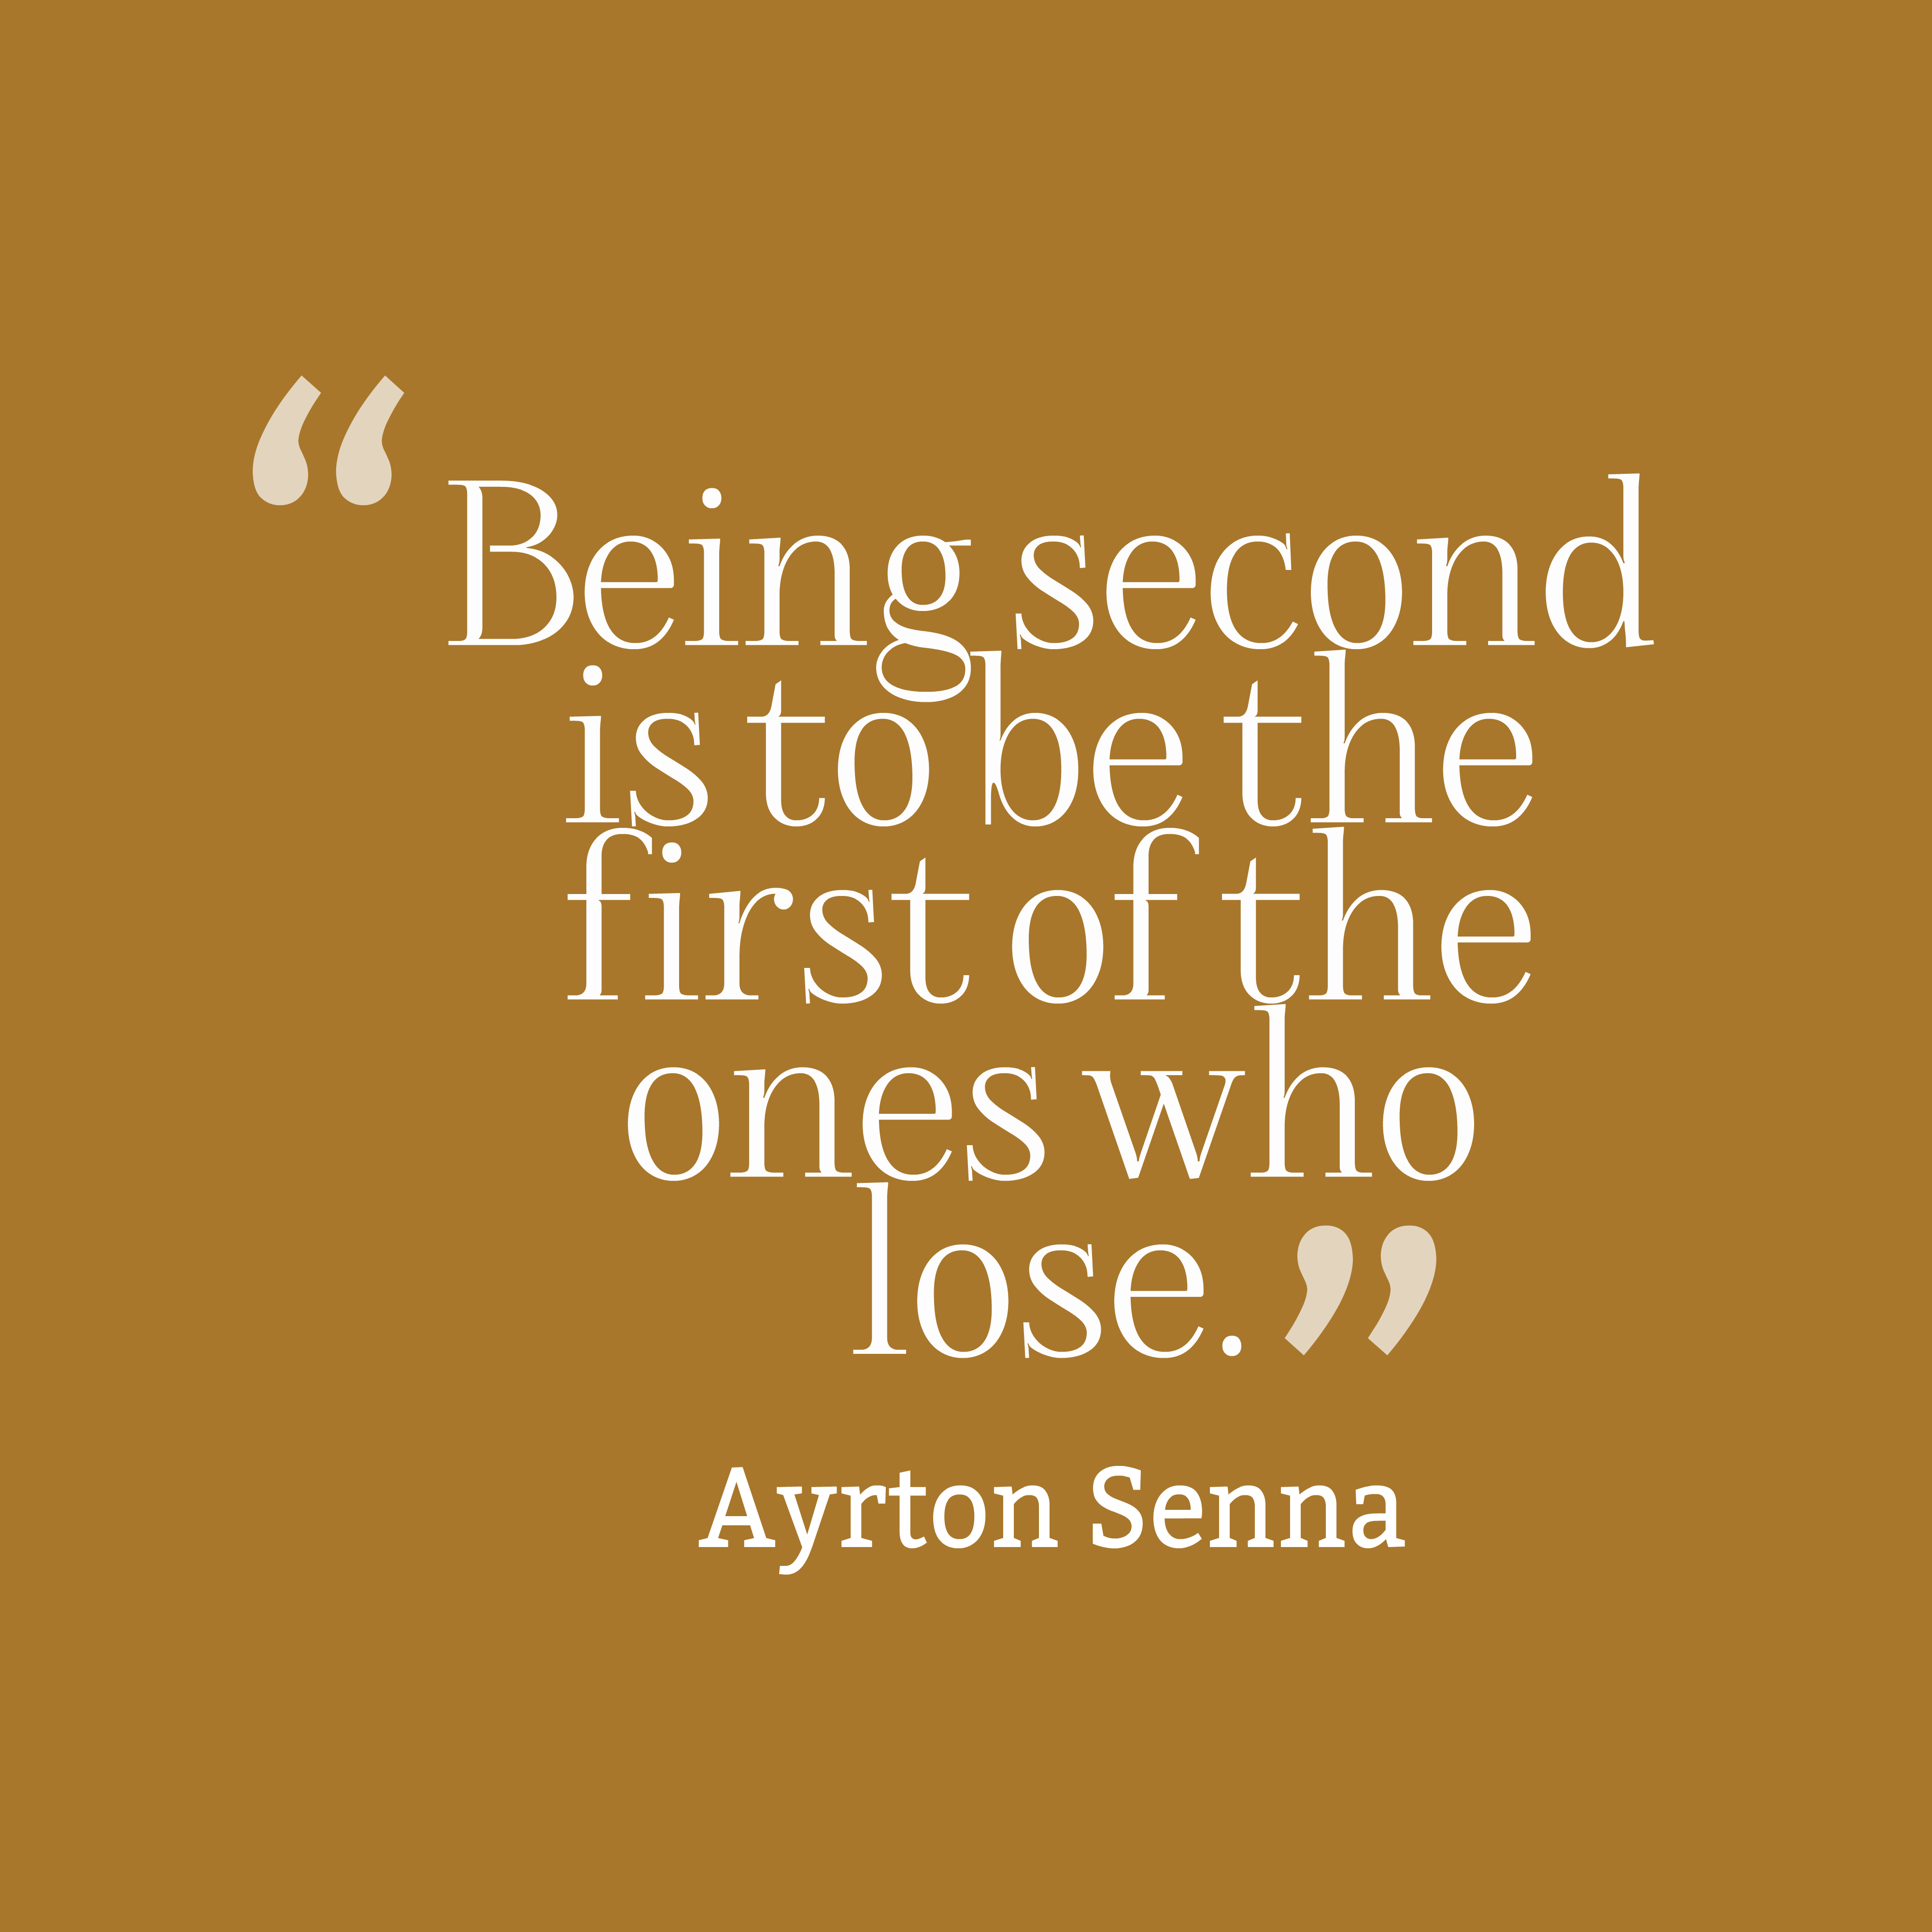 Ayrton Senna Quote About Competition